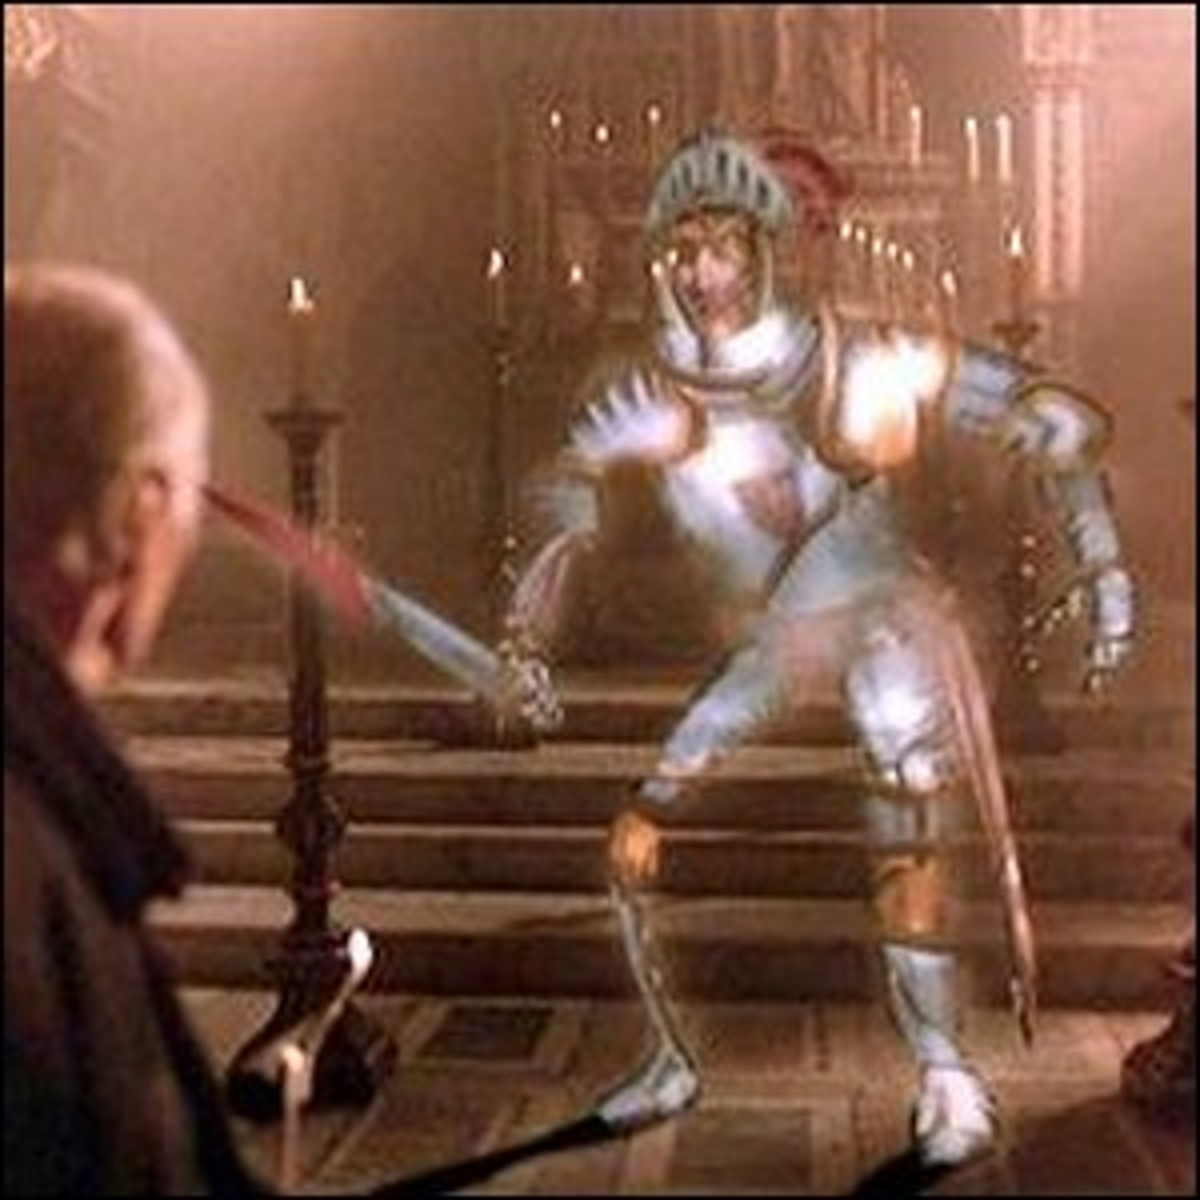 The Stained Glass Knight attacking the priest in Young Sherlock Holmes.